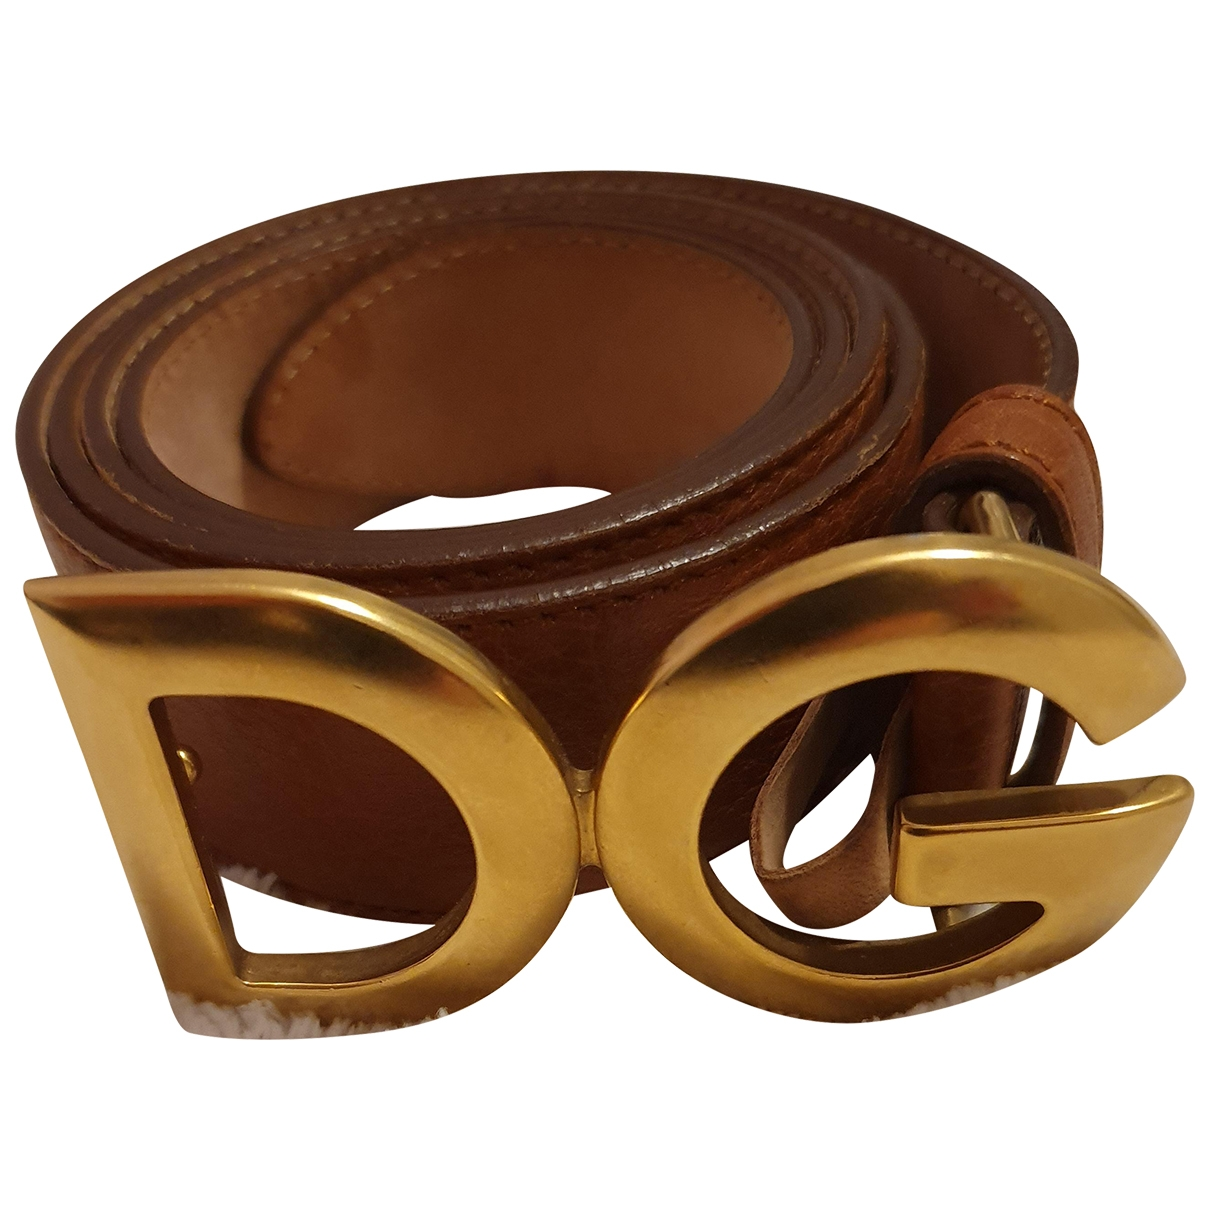 D&g \N Brown Leather belt for Women 95 cm